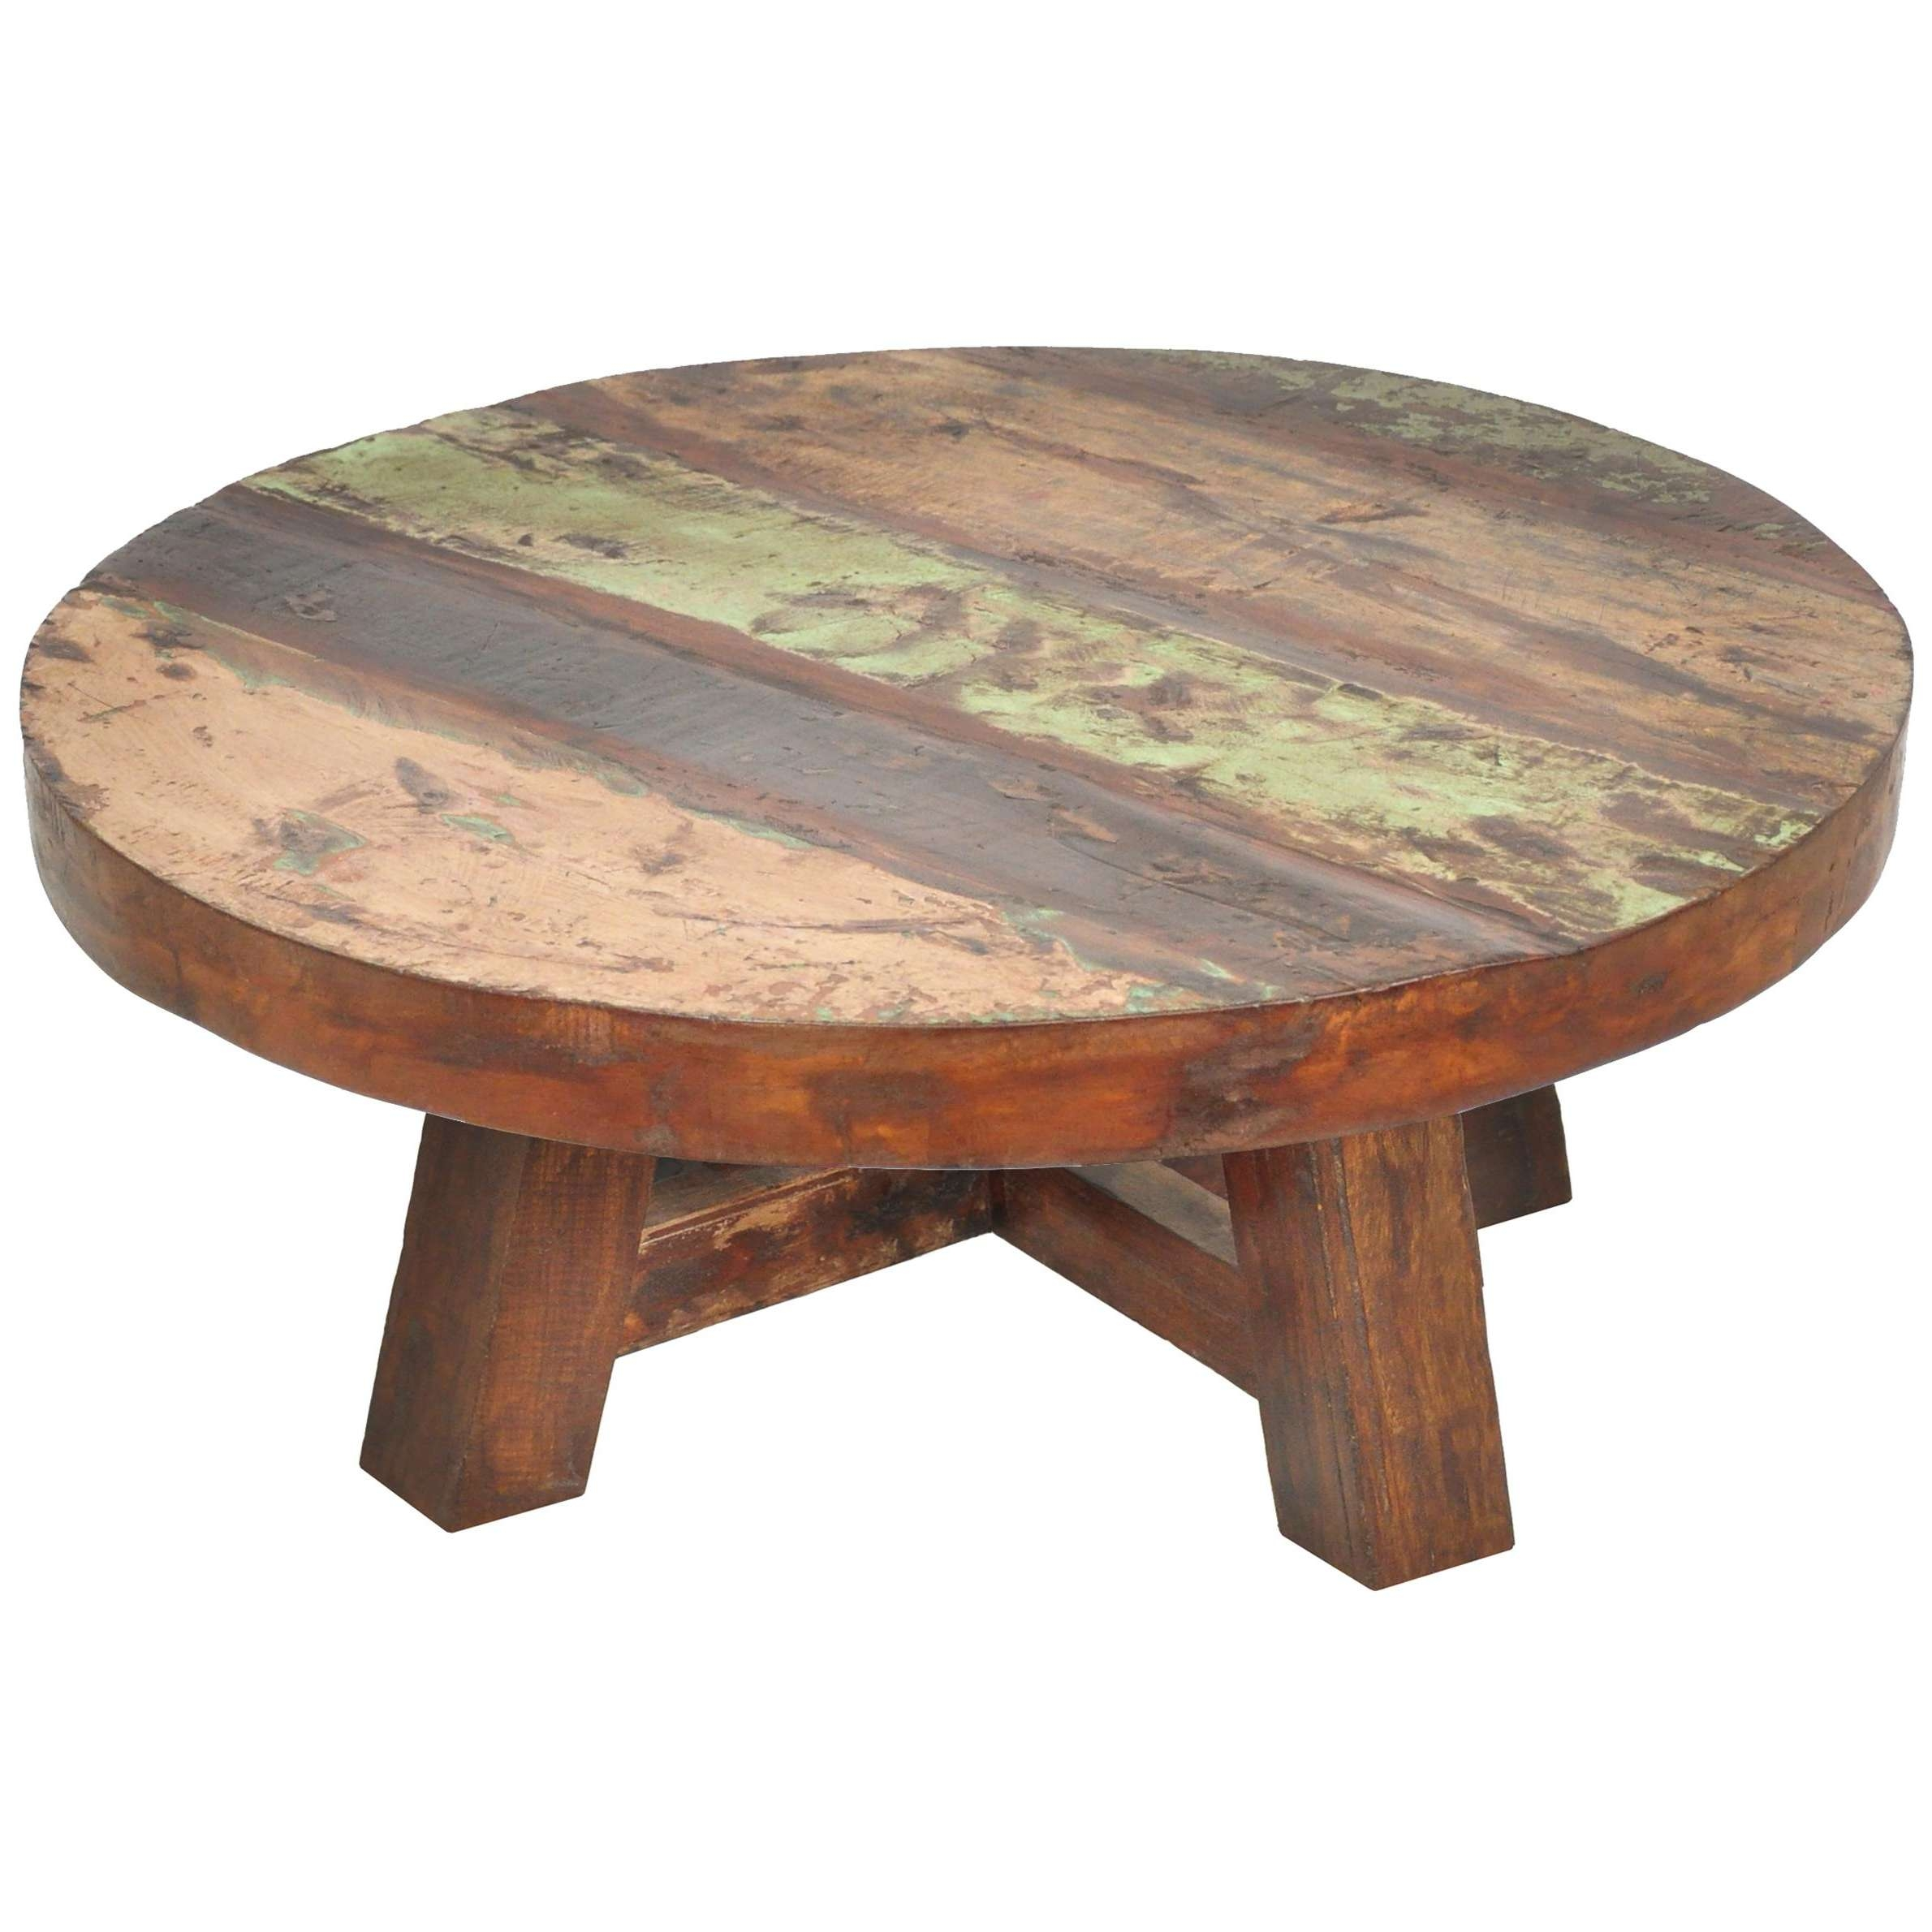 Round Natural Wood Coffee Table – Chocoaddicts – Chocoaddicts Throughout Recent Wooden Garden Coffee Tables (View 2 of 20)